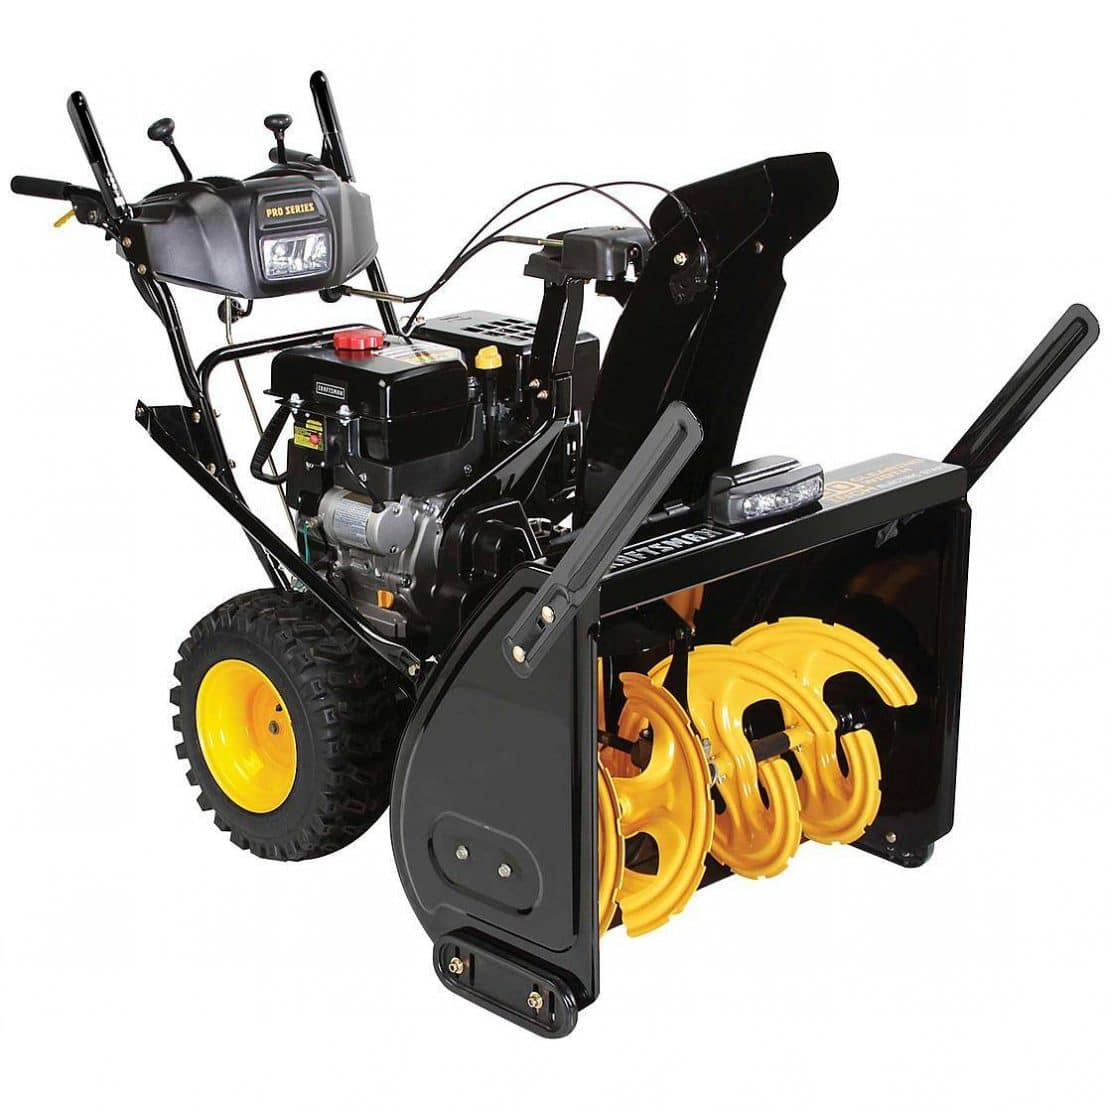 2016 Craftsman Snow Blowers - What's New - and Exciting!